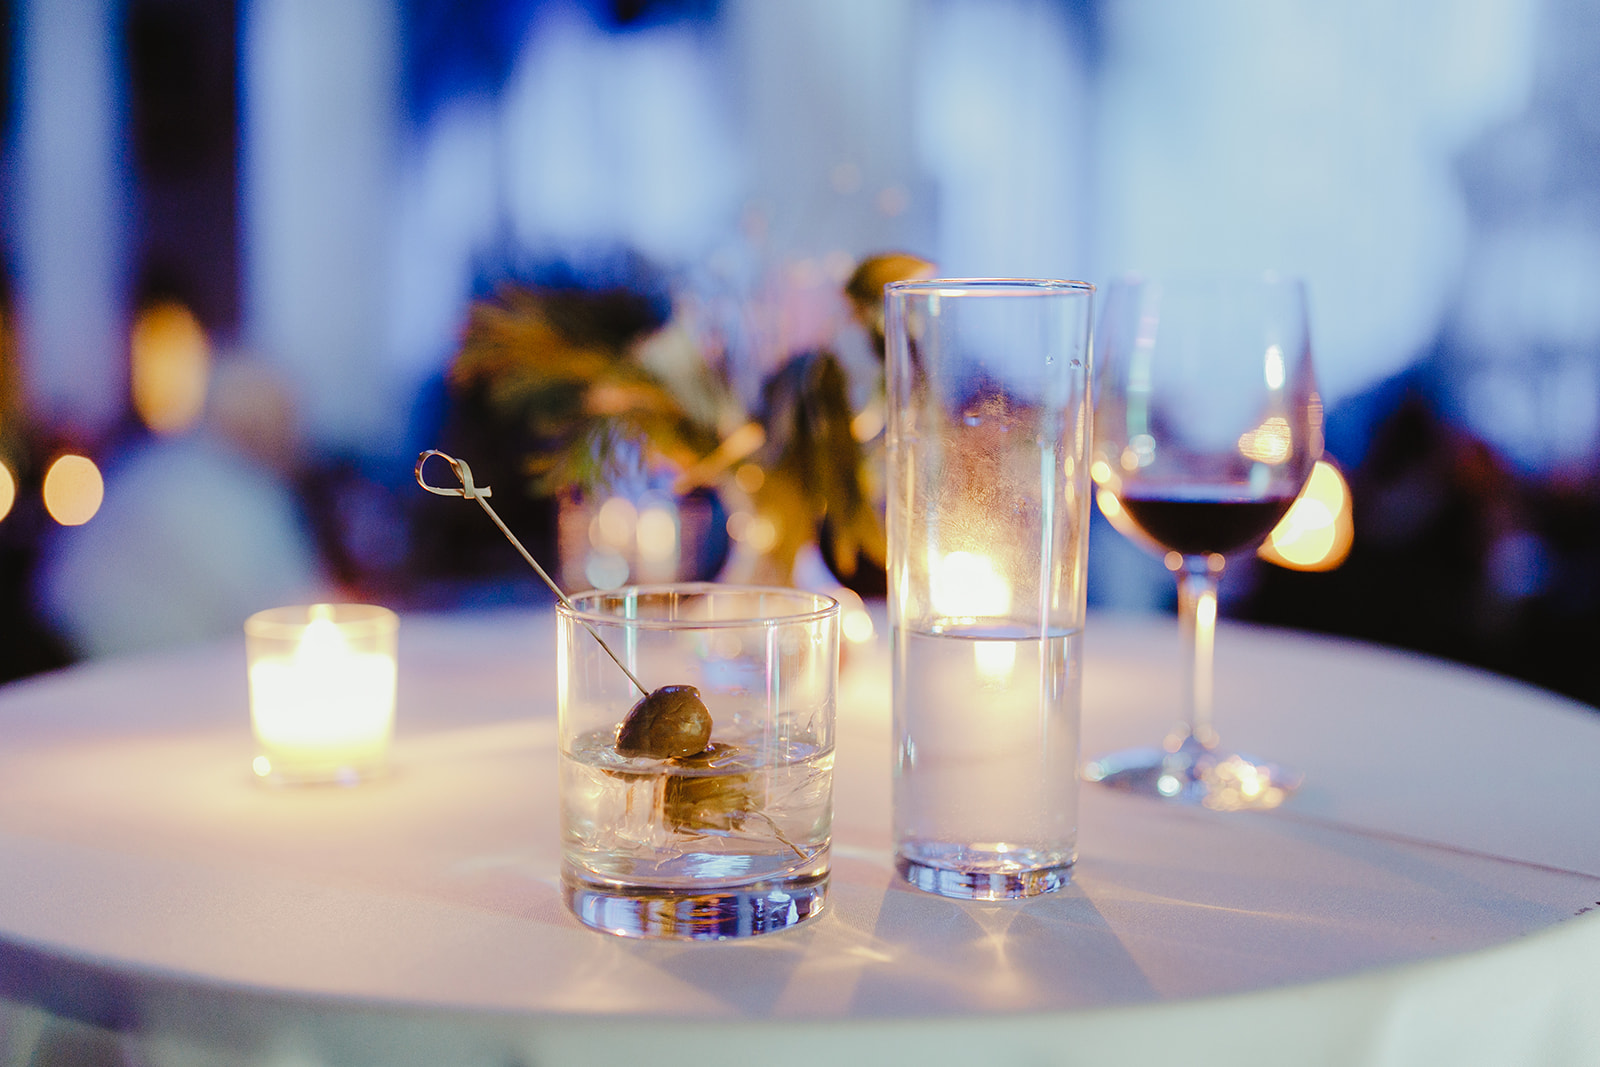 Drinks sitting on a table during a Grand Rapids, Michigan wedding